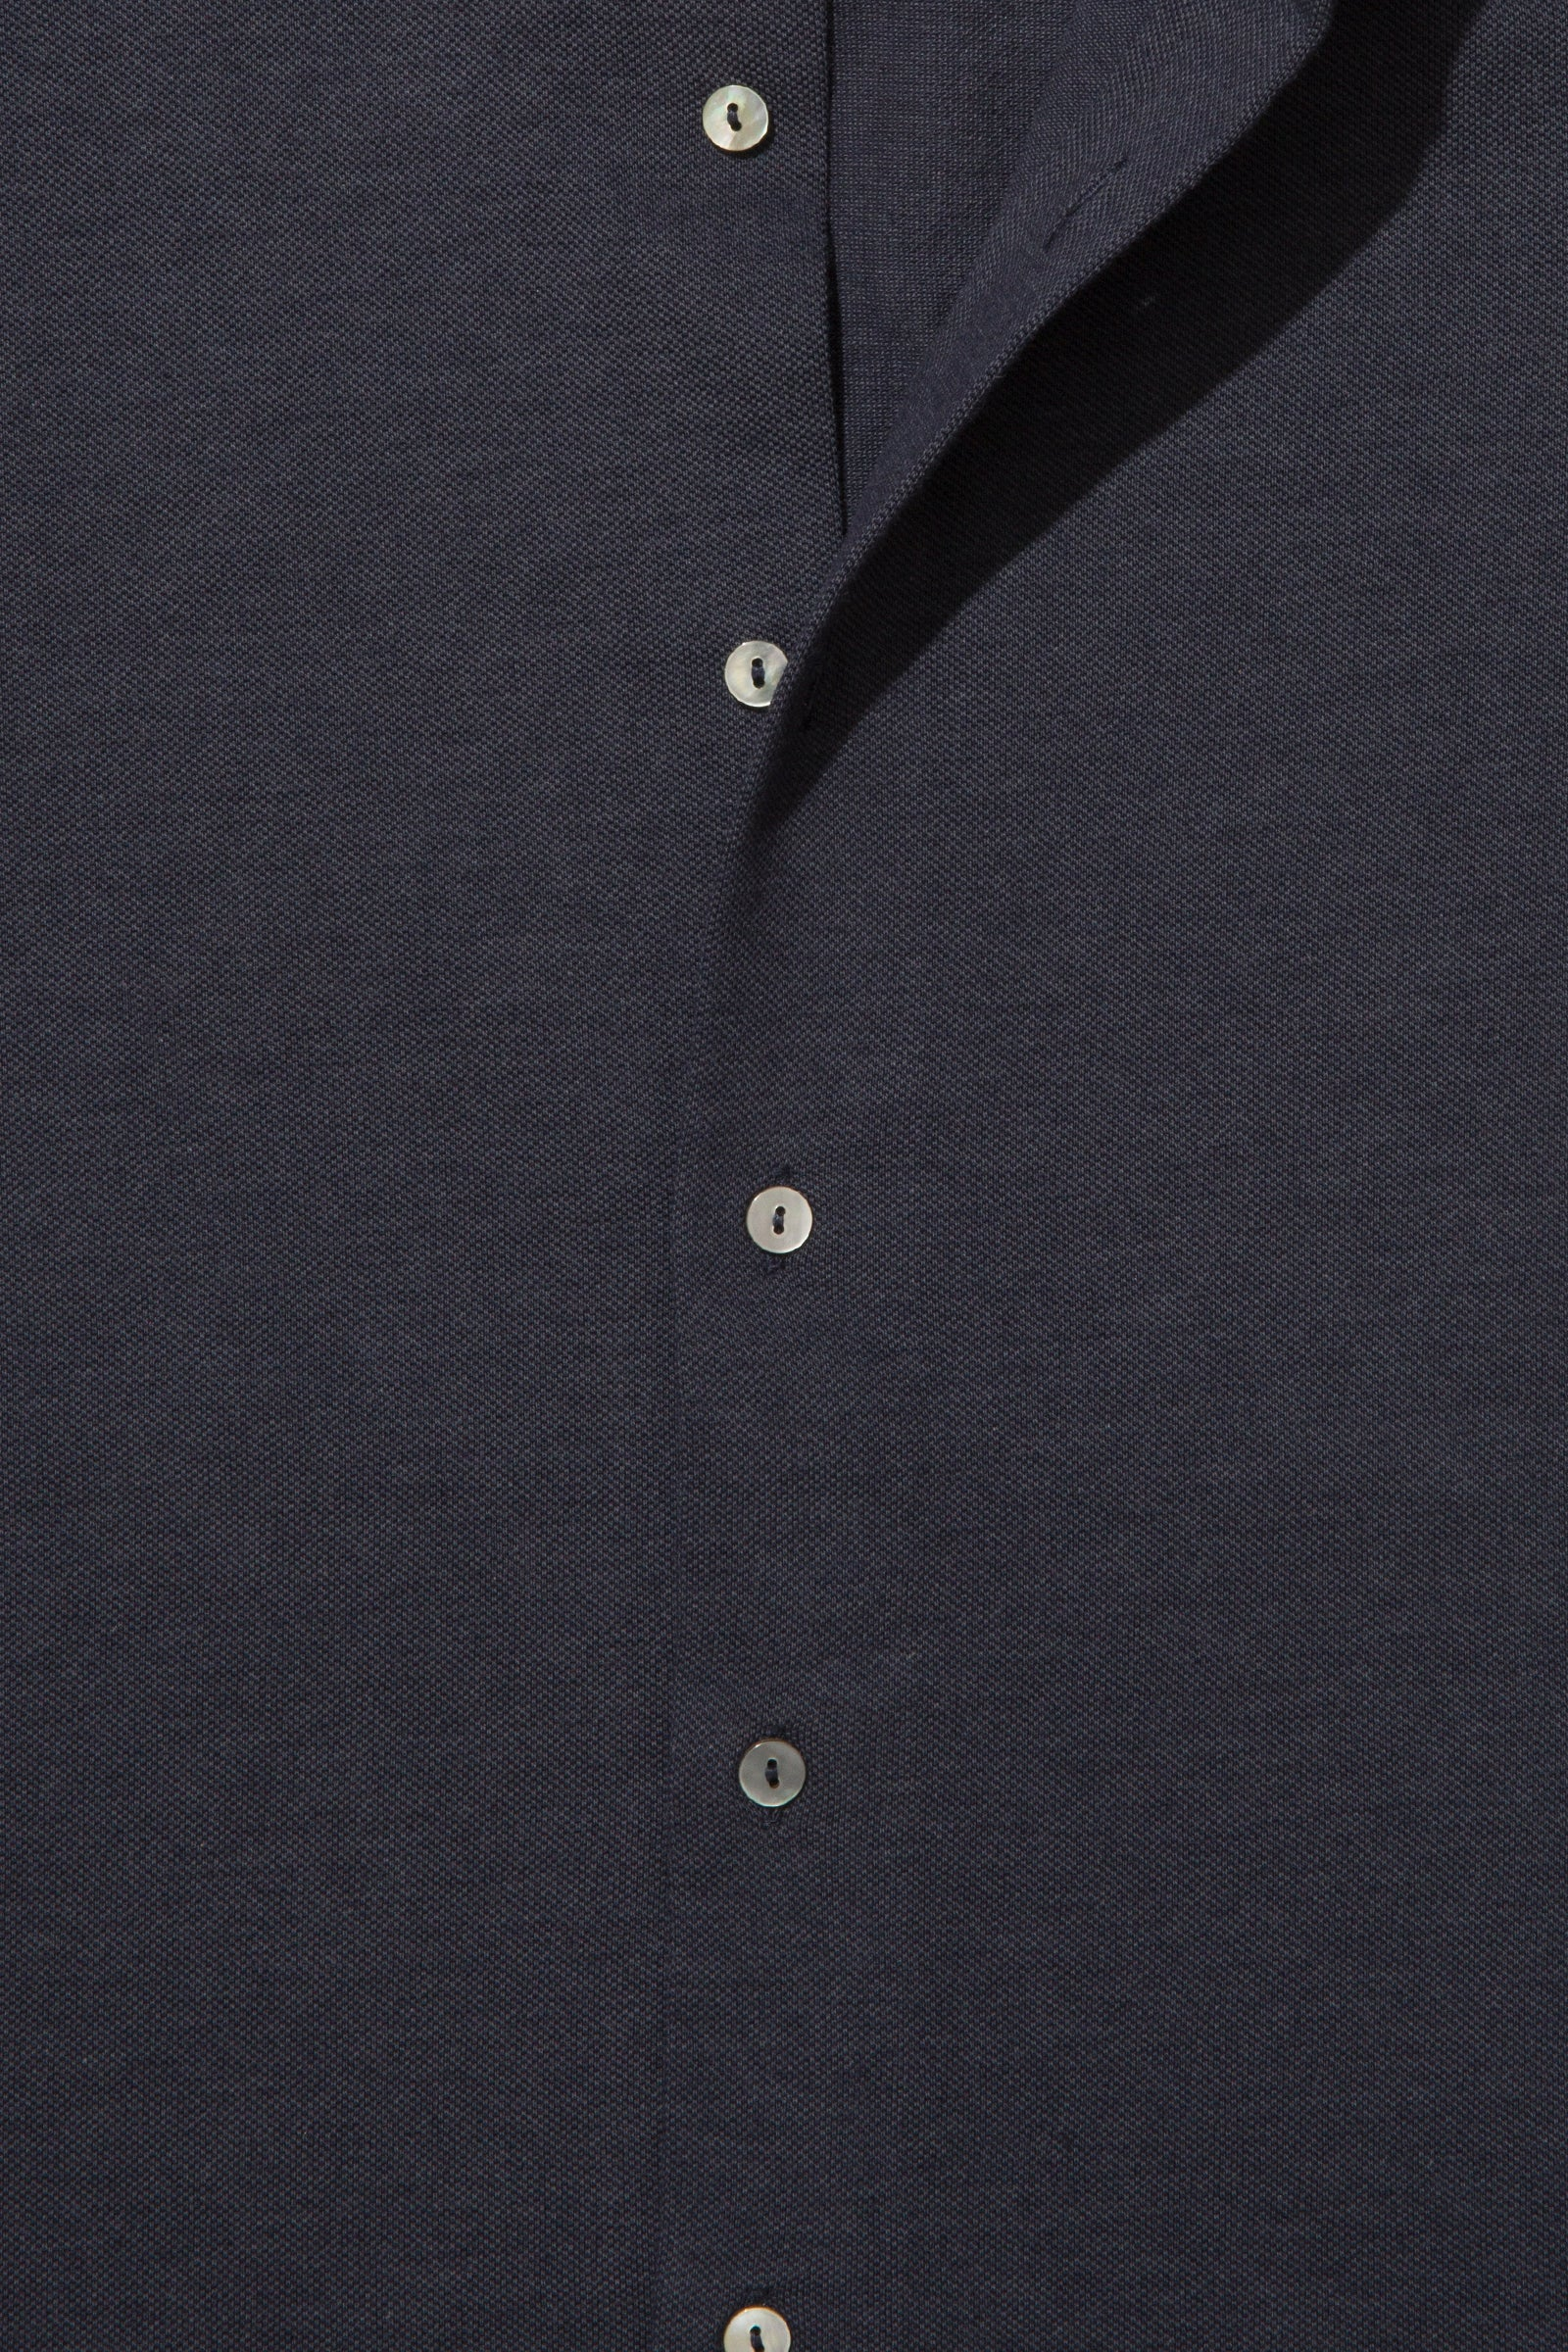 Knitwear - Spread Collar Shirt (Dark Indigo)